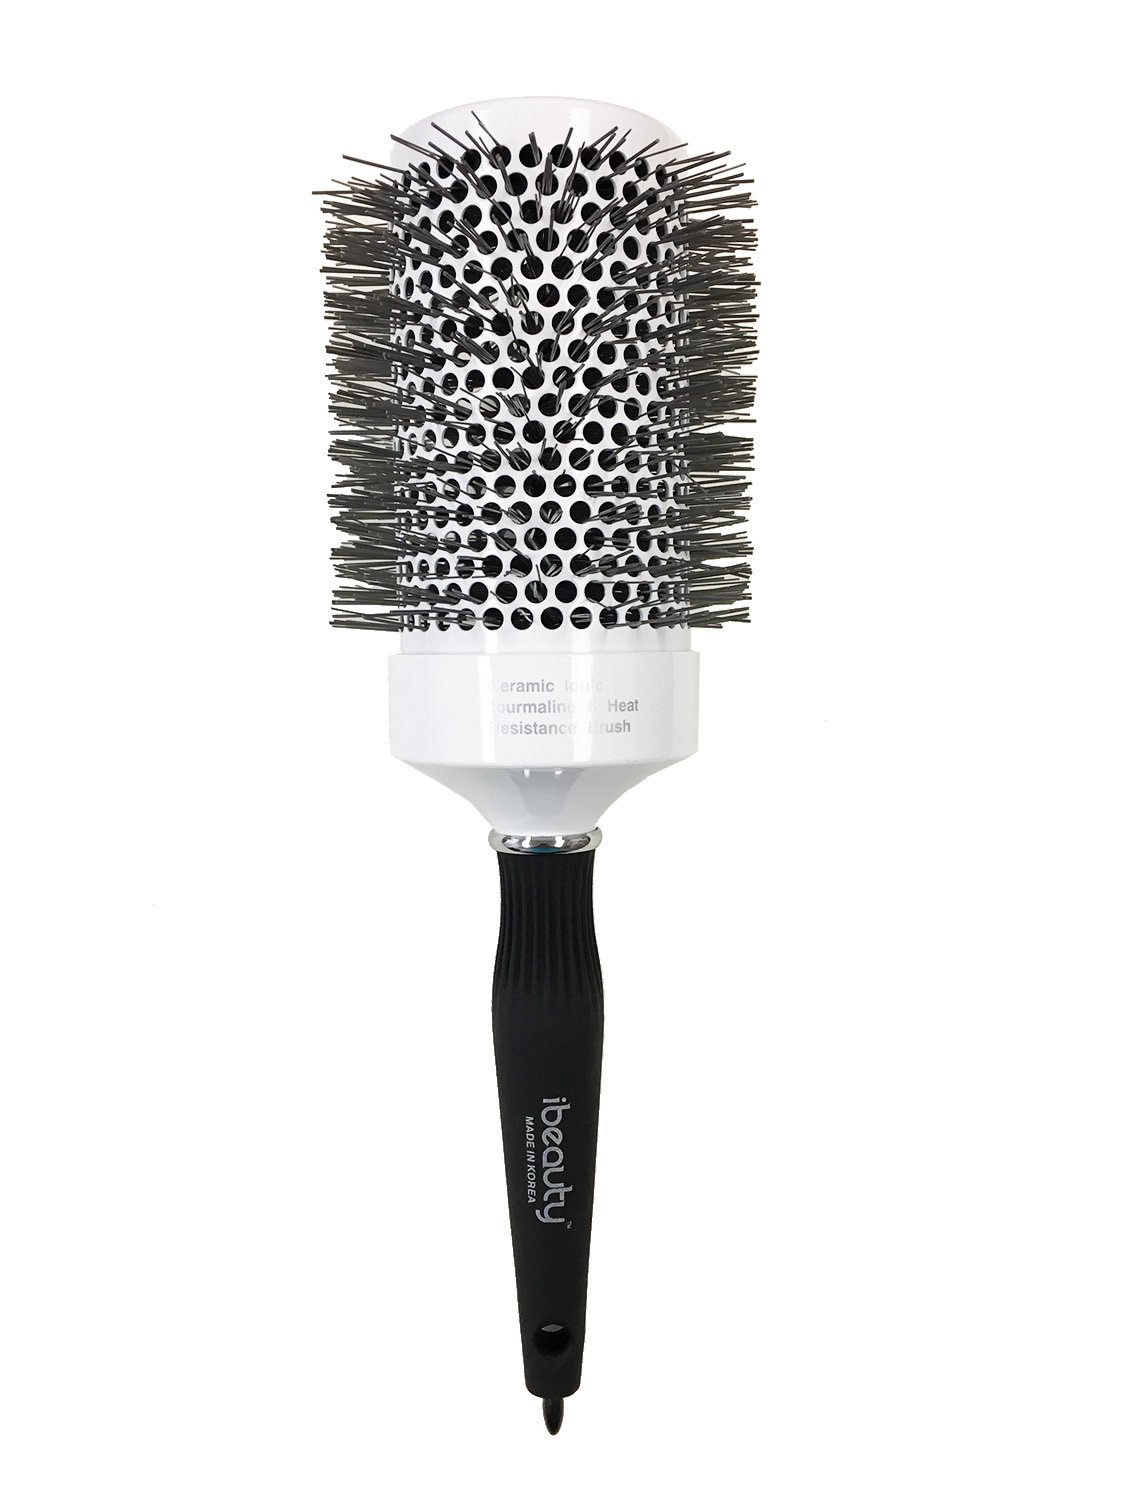 iBeauty 2.5'' (65mm) Ceramic Ionic Tourmaline Styling Curling Hair Brush for Women Blow Drying, Made in Korea (#1901)